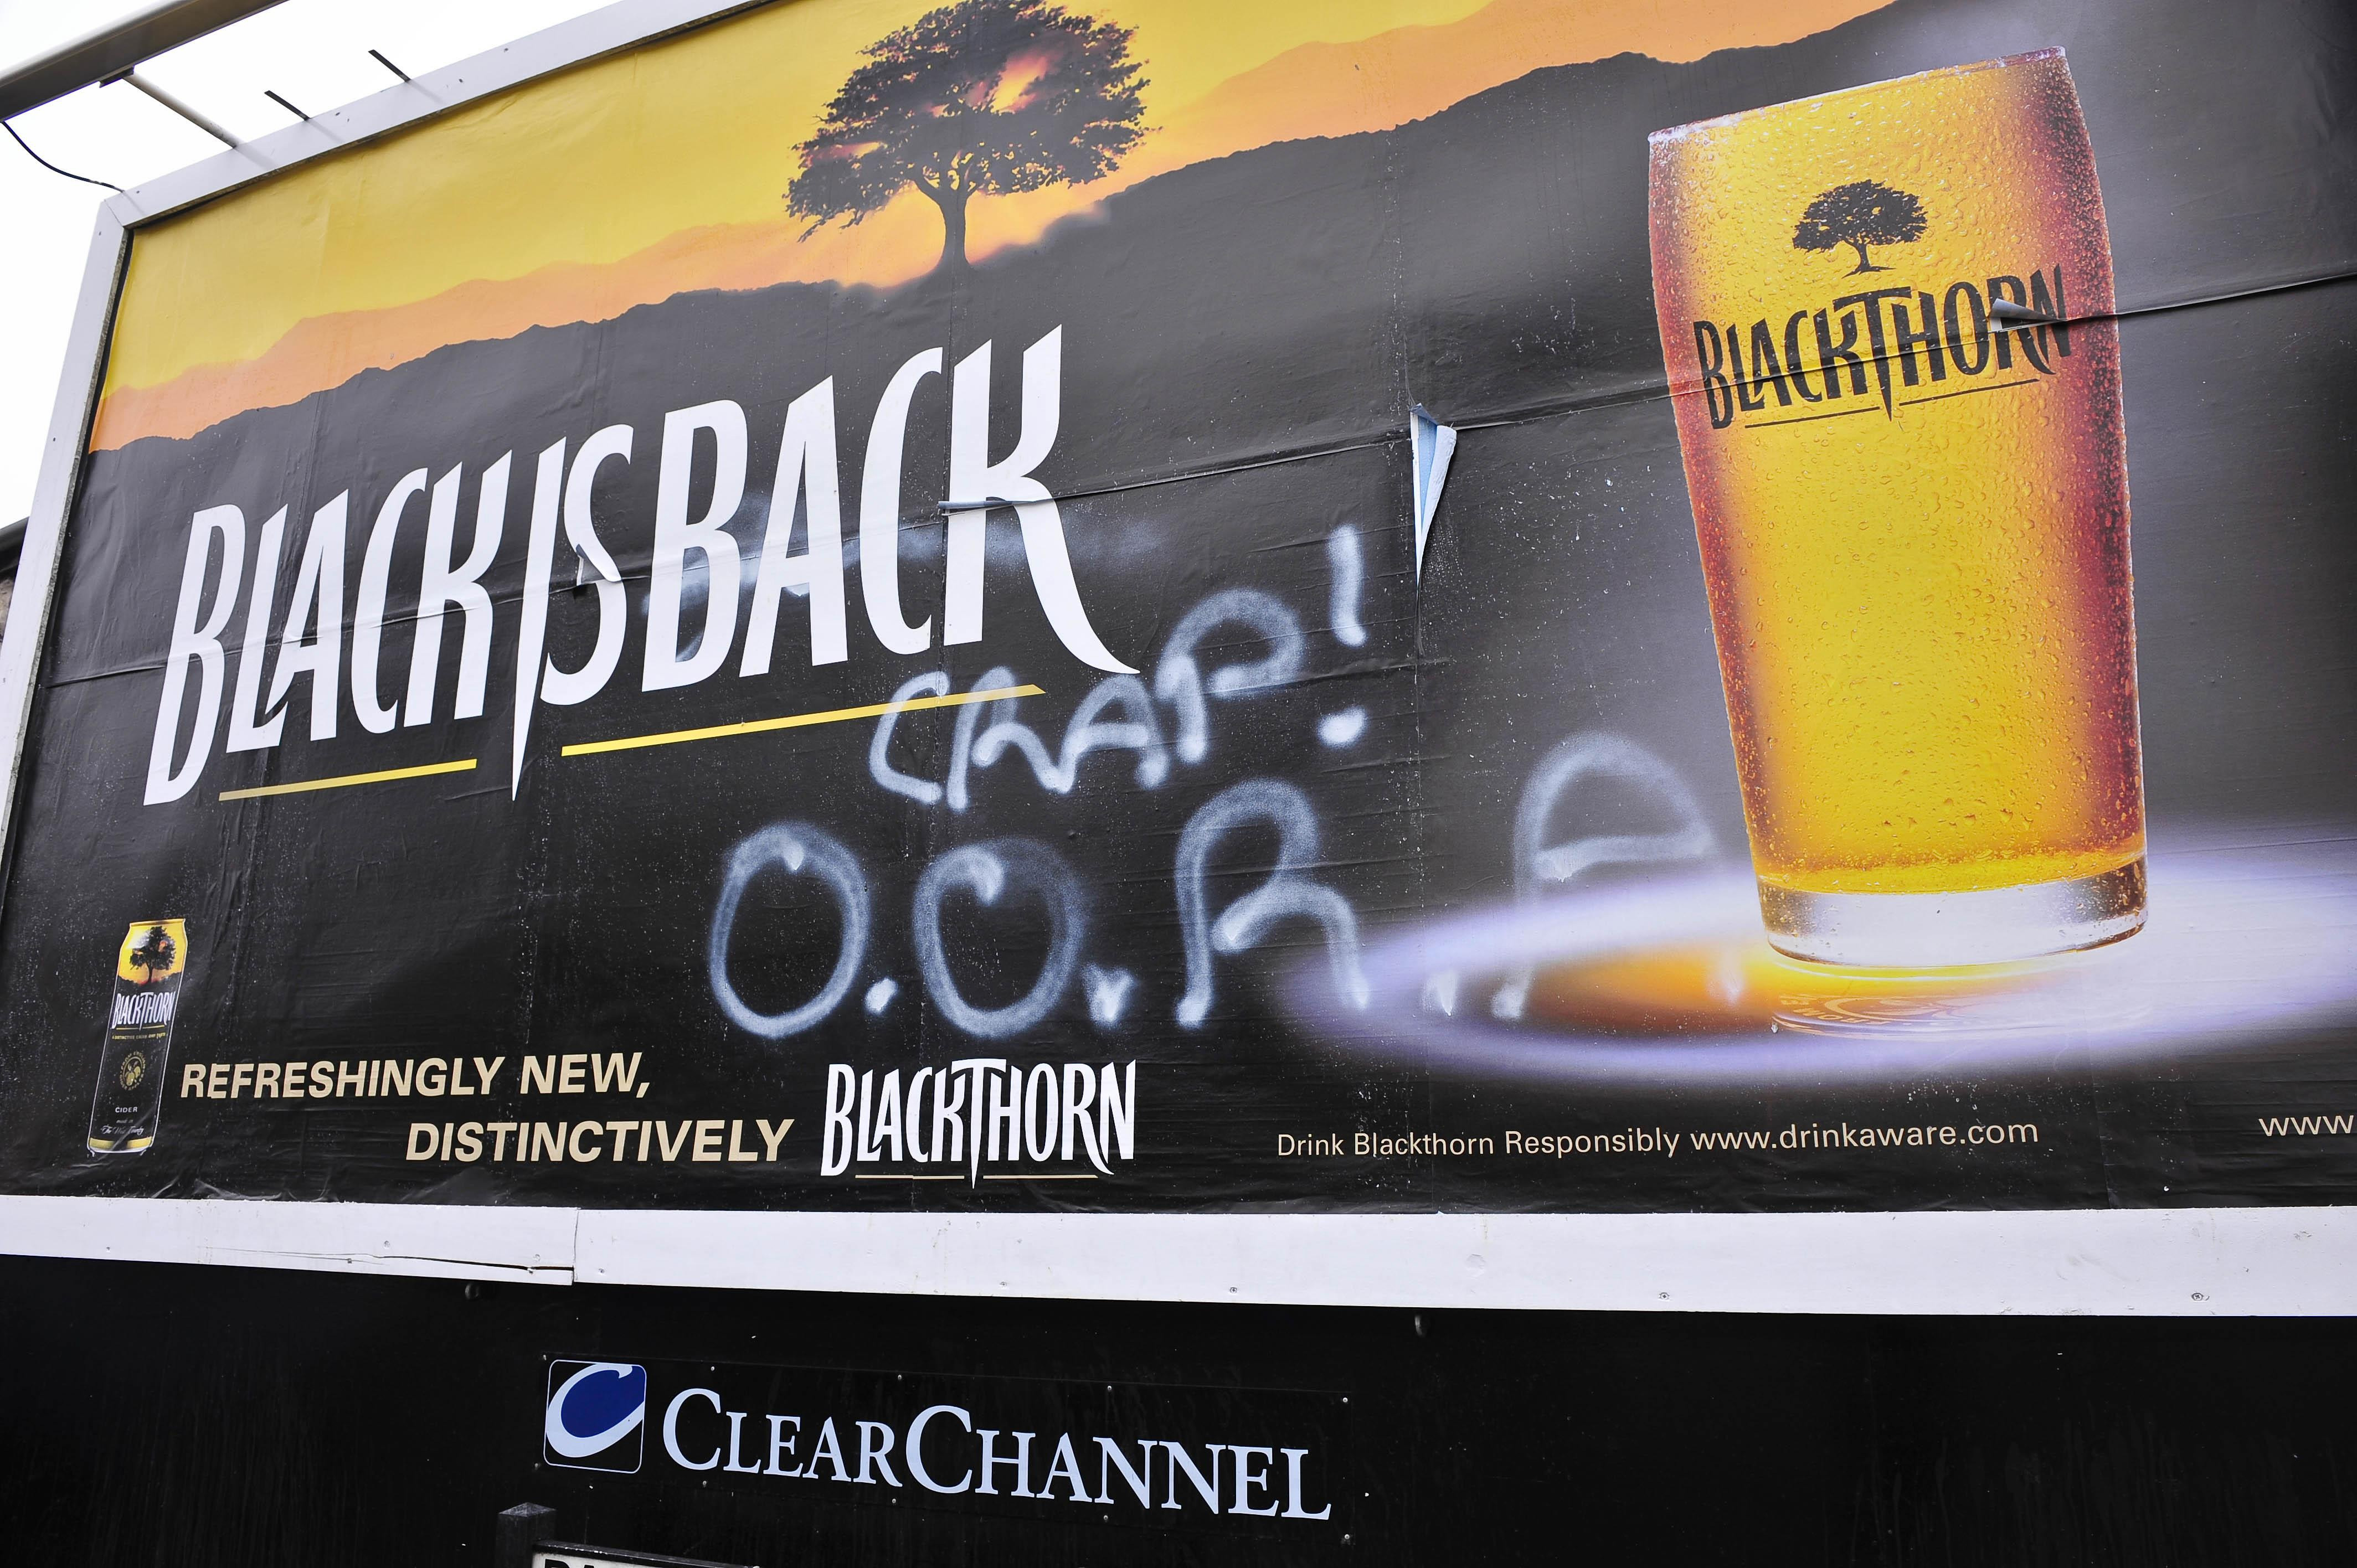 Blackthorn cider billboards defaced